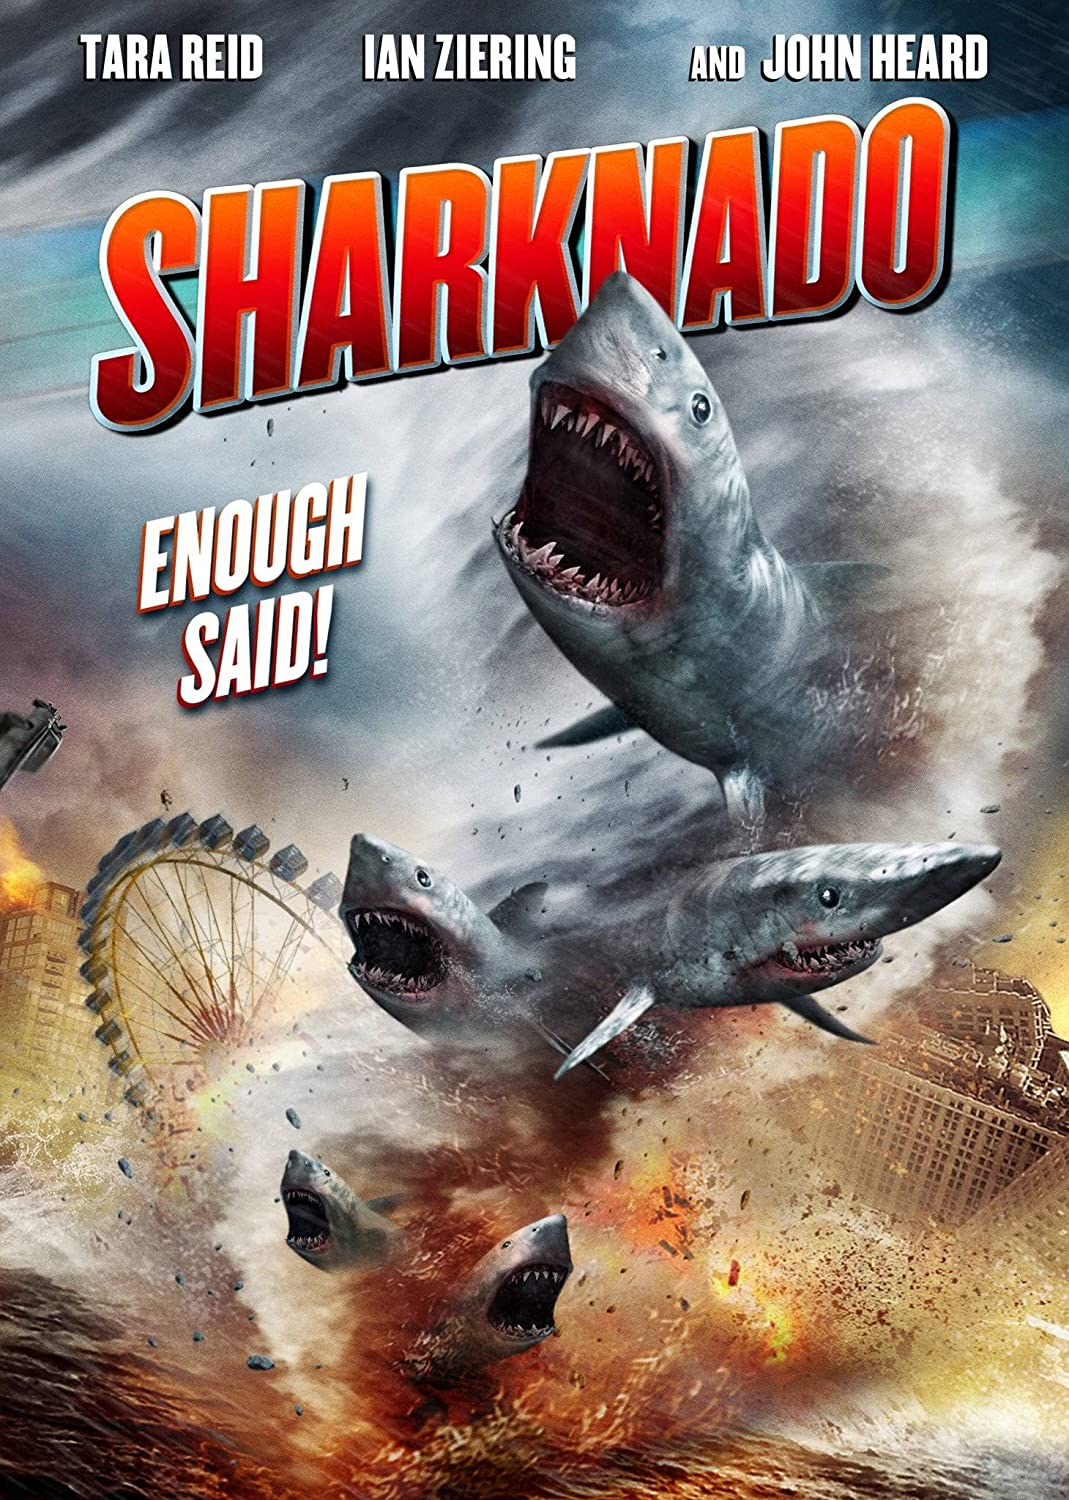 36th Picks Peeks Of 2013 With Sharknado Van Damme In A Hockey Possessedhand Will Move Your Hand For You But Make No Mistake About It This Is Goodfellas Imagining Story And Cast Scorseses Hands Youre Talking Classic